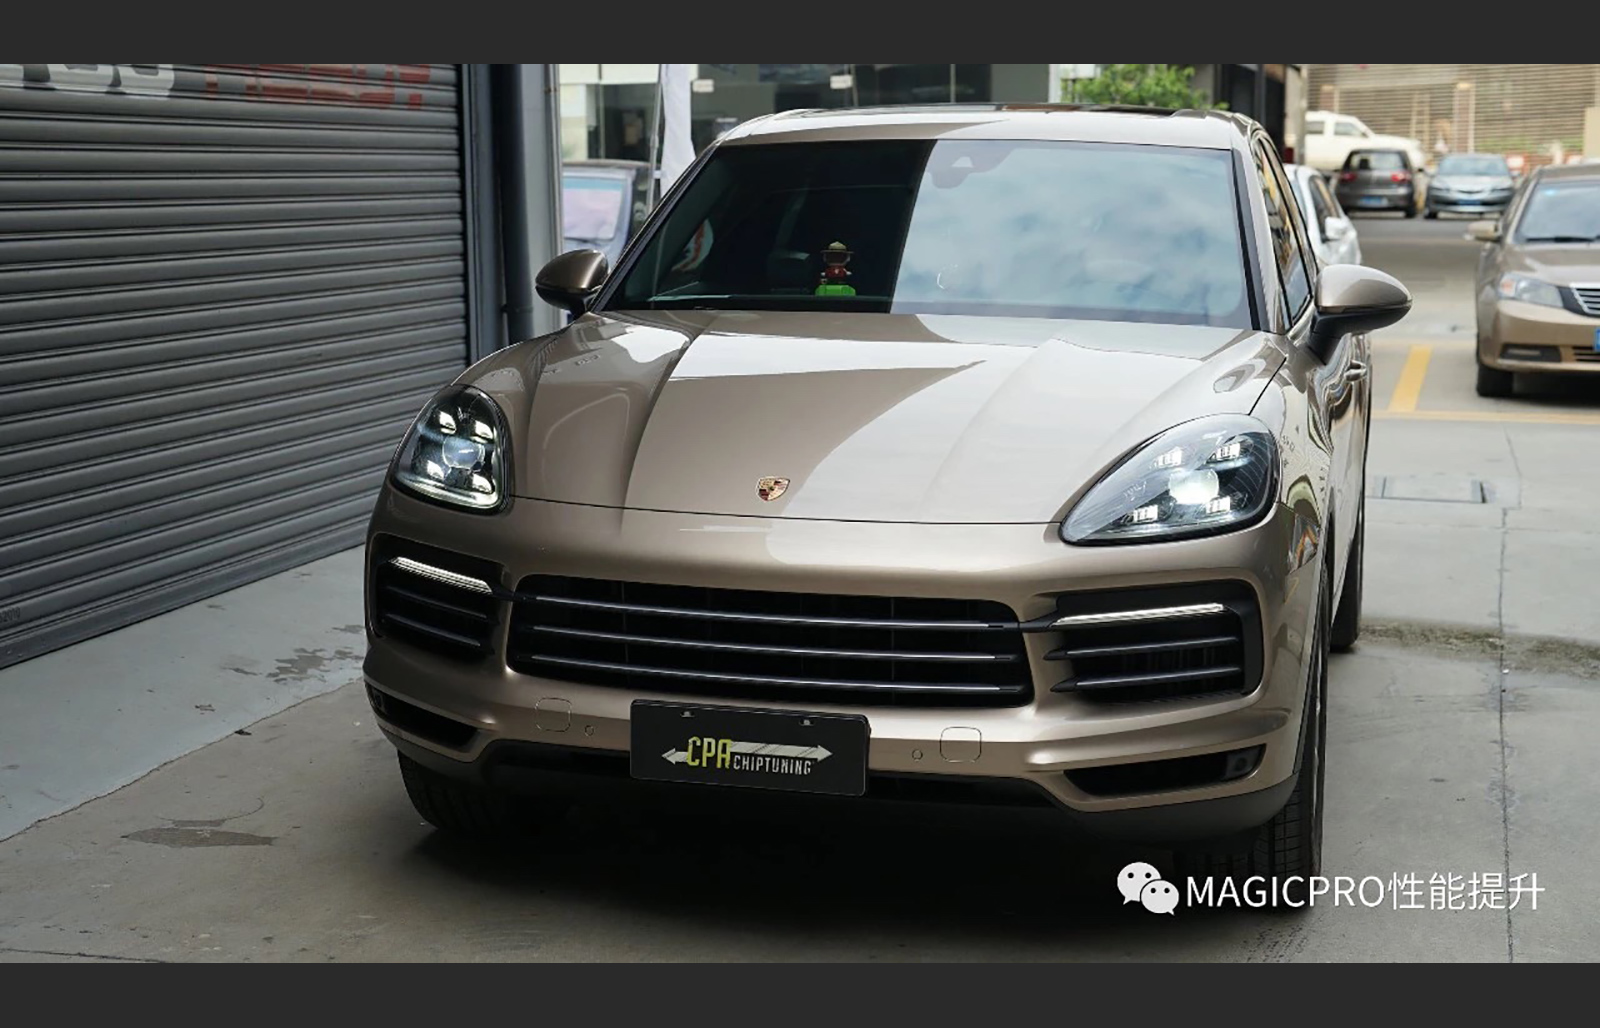 Porsche SUV with CPA chip tuning